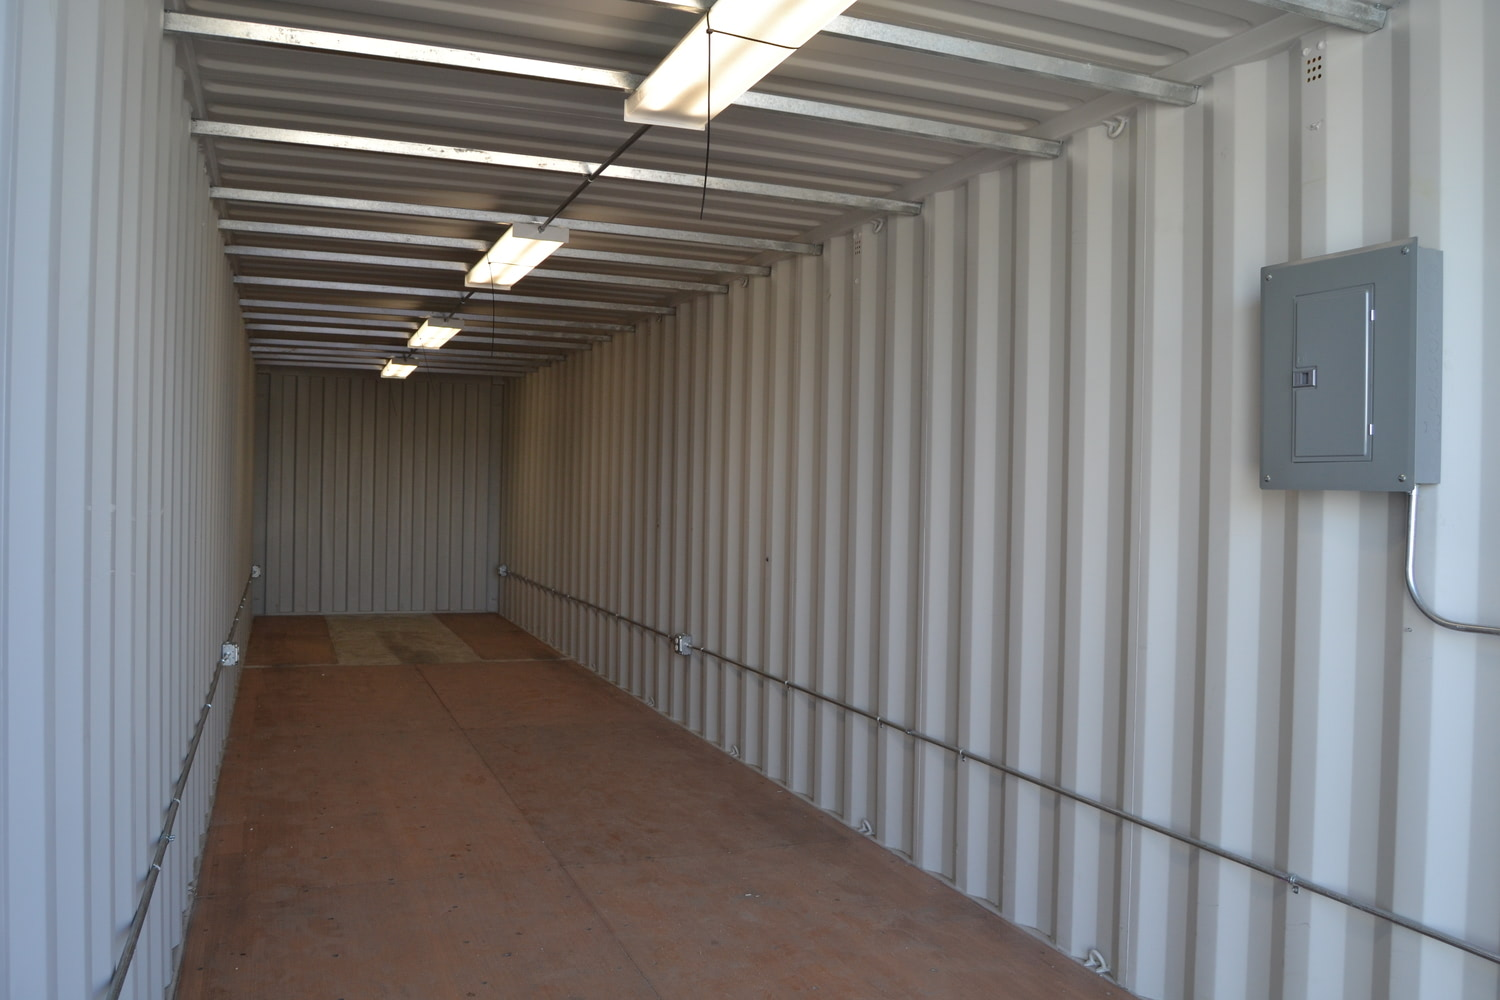 Interior of shipping container modified into portable storage shed.